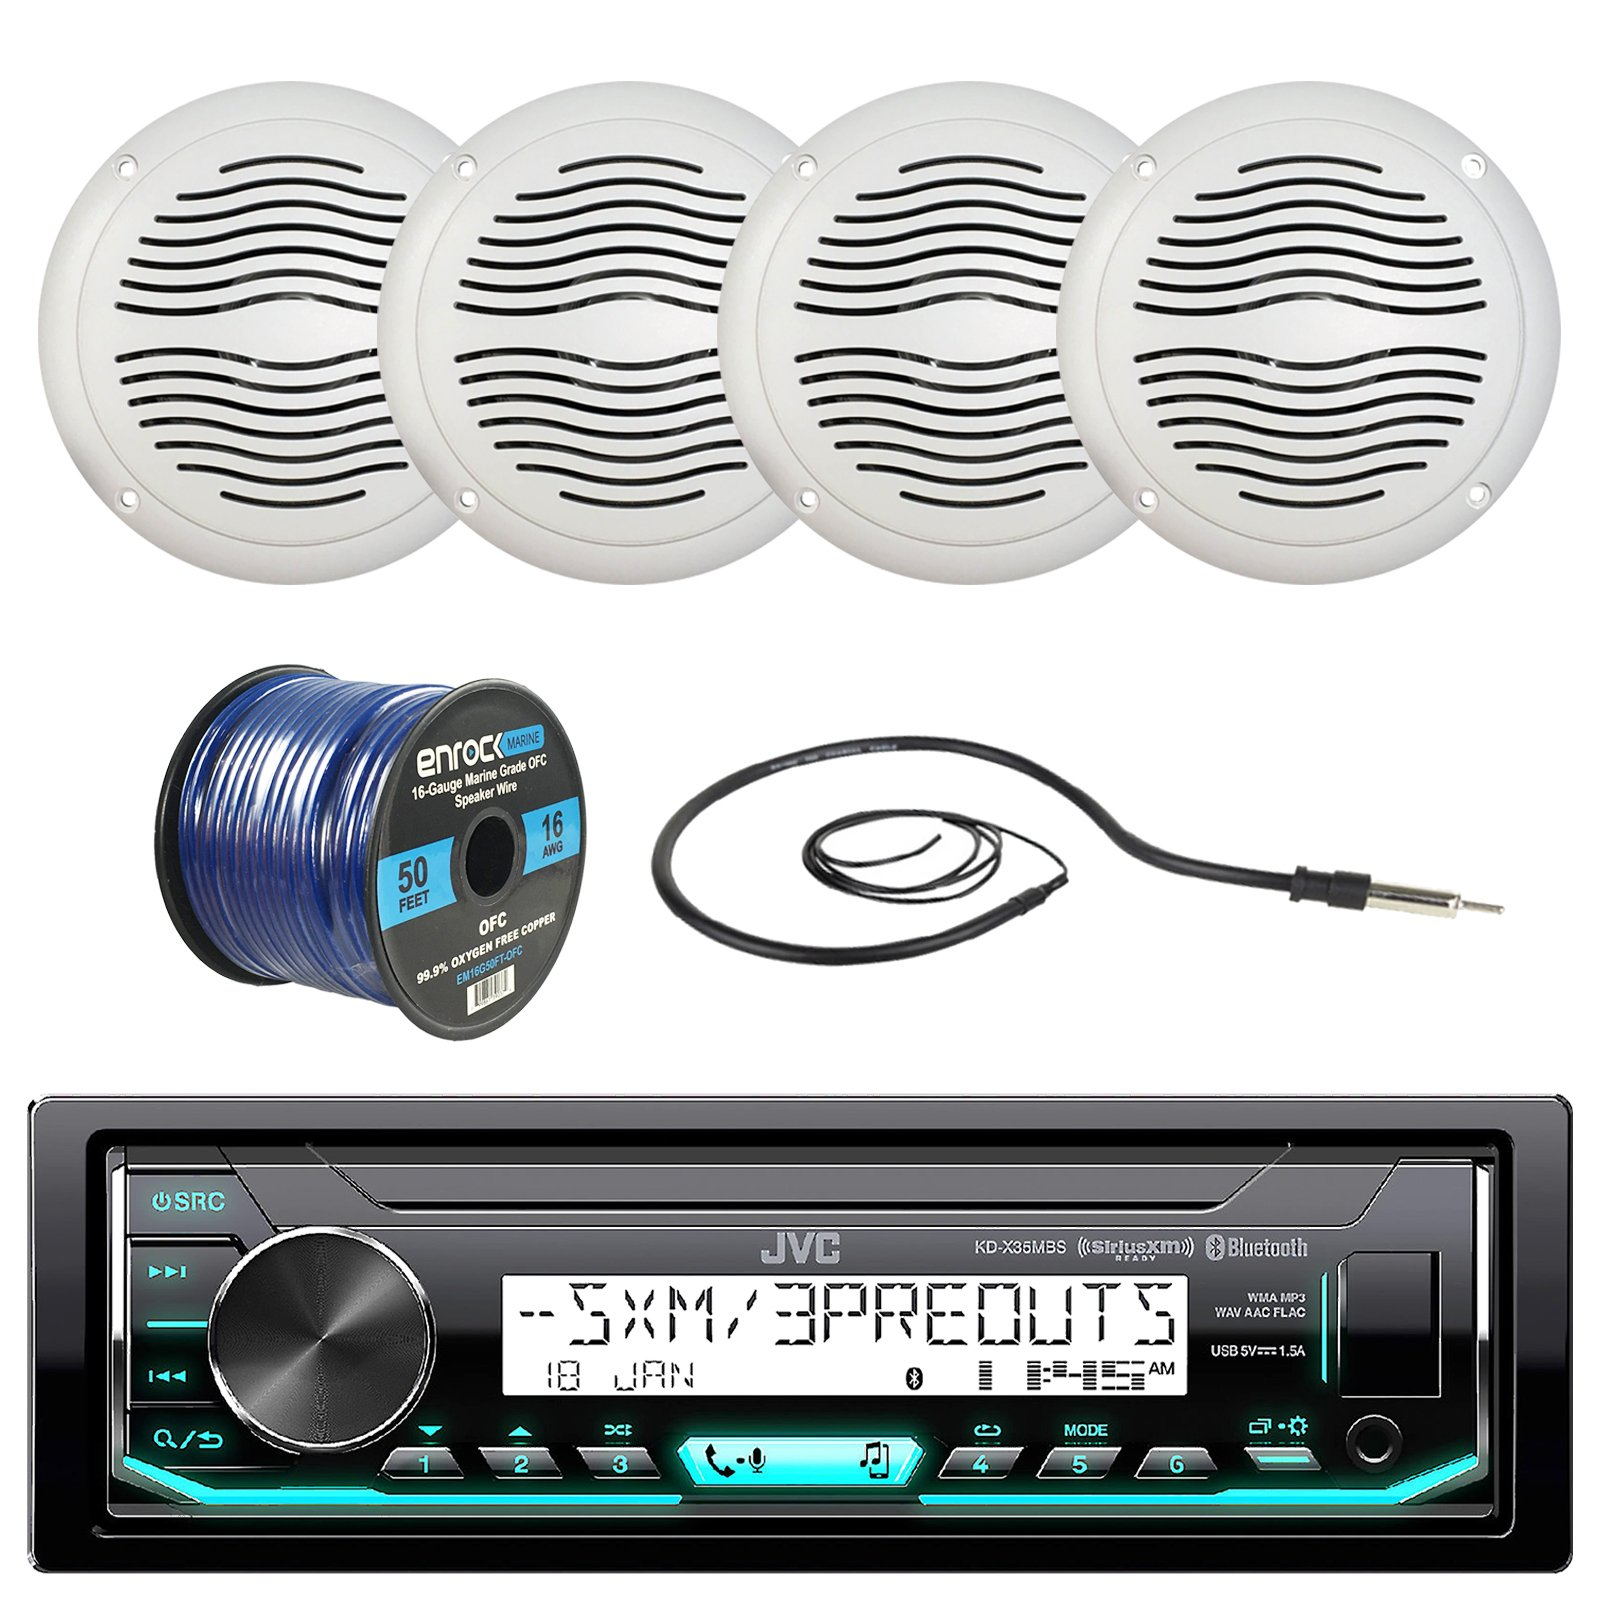 JVC KD-X33MBS Marine Boat Yacht Radio Stereo Player Receiver Bundle Combo With 4x Magnadyne WR45W 5'' Inch White Waterproof Outdoor Speakers, Enrock 22'' Radio Antenna, 50 Foot 16g Speaker Wire by EnrockMarineBundle